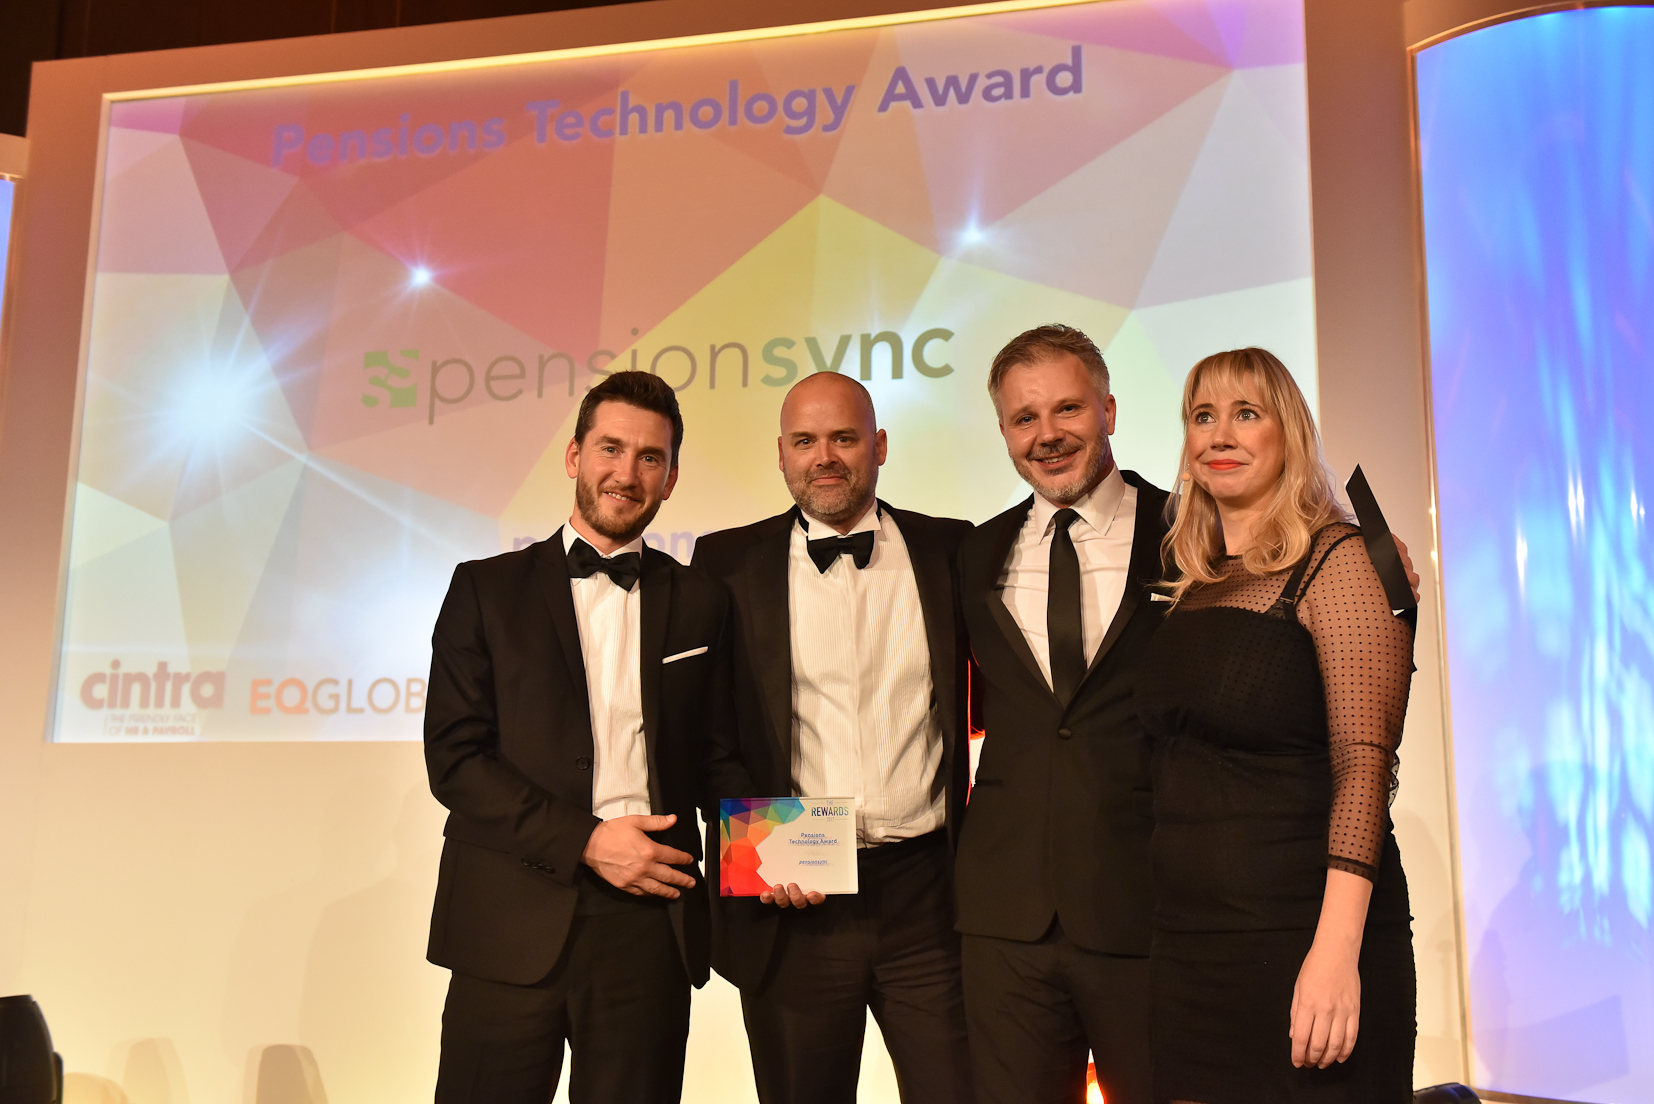 Winners 2017 - 12 Pensions Technology Award